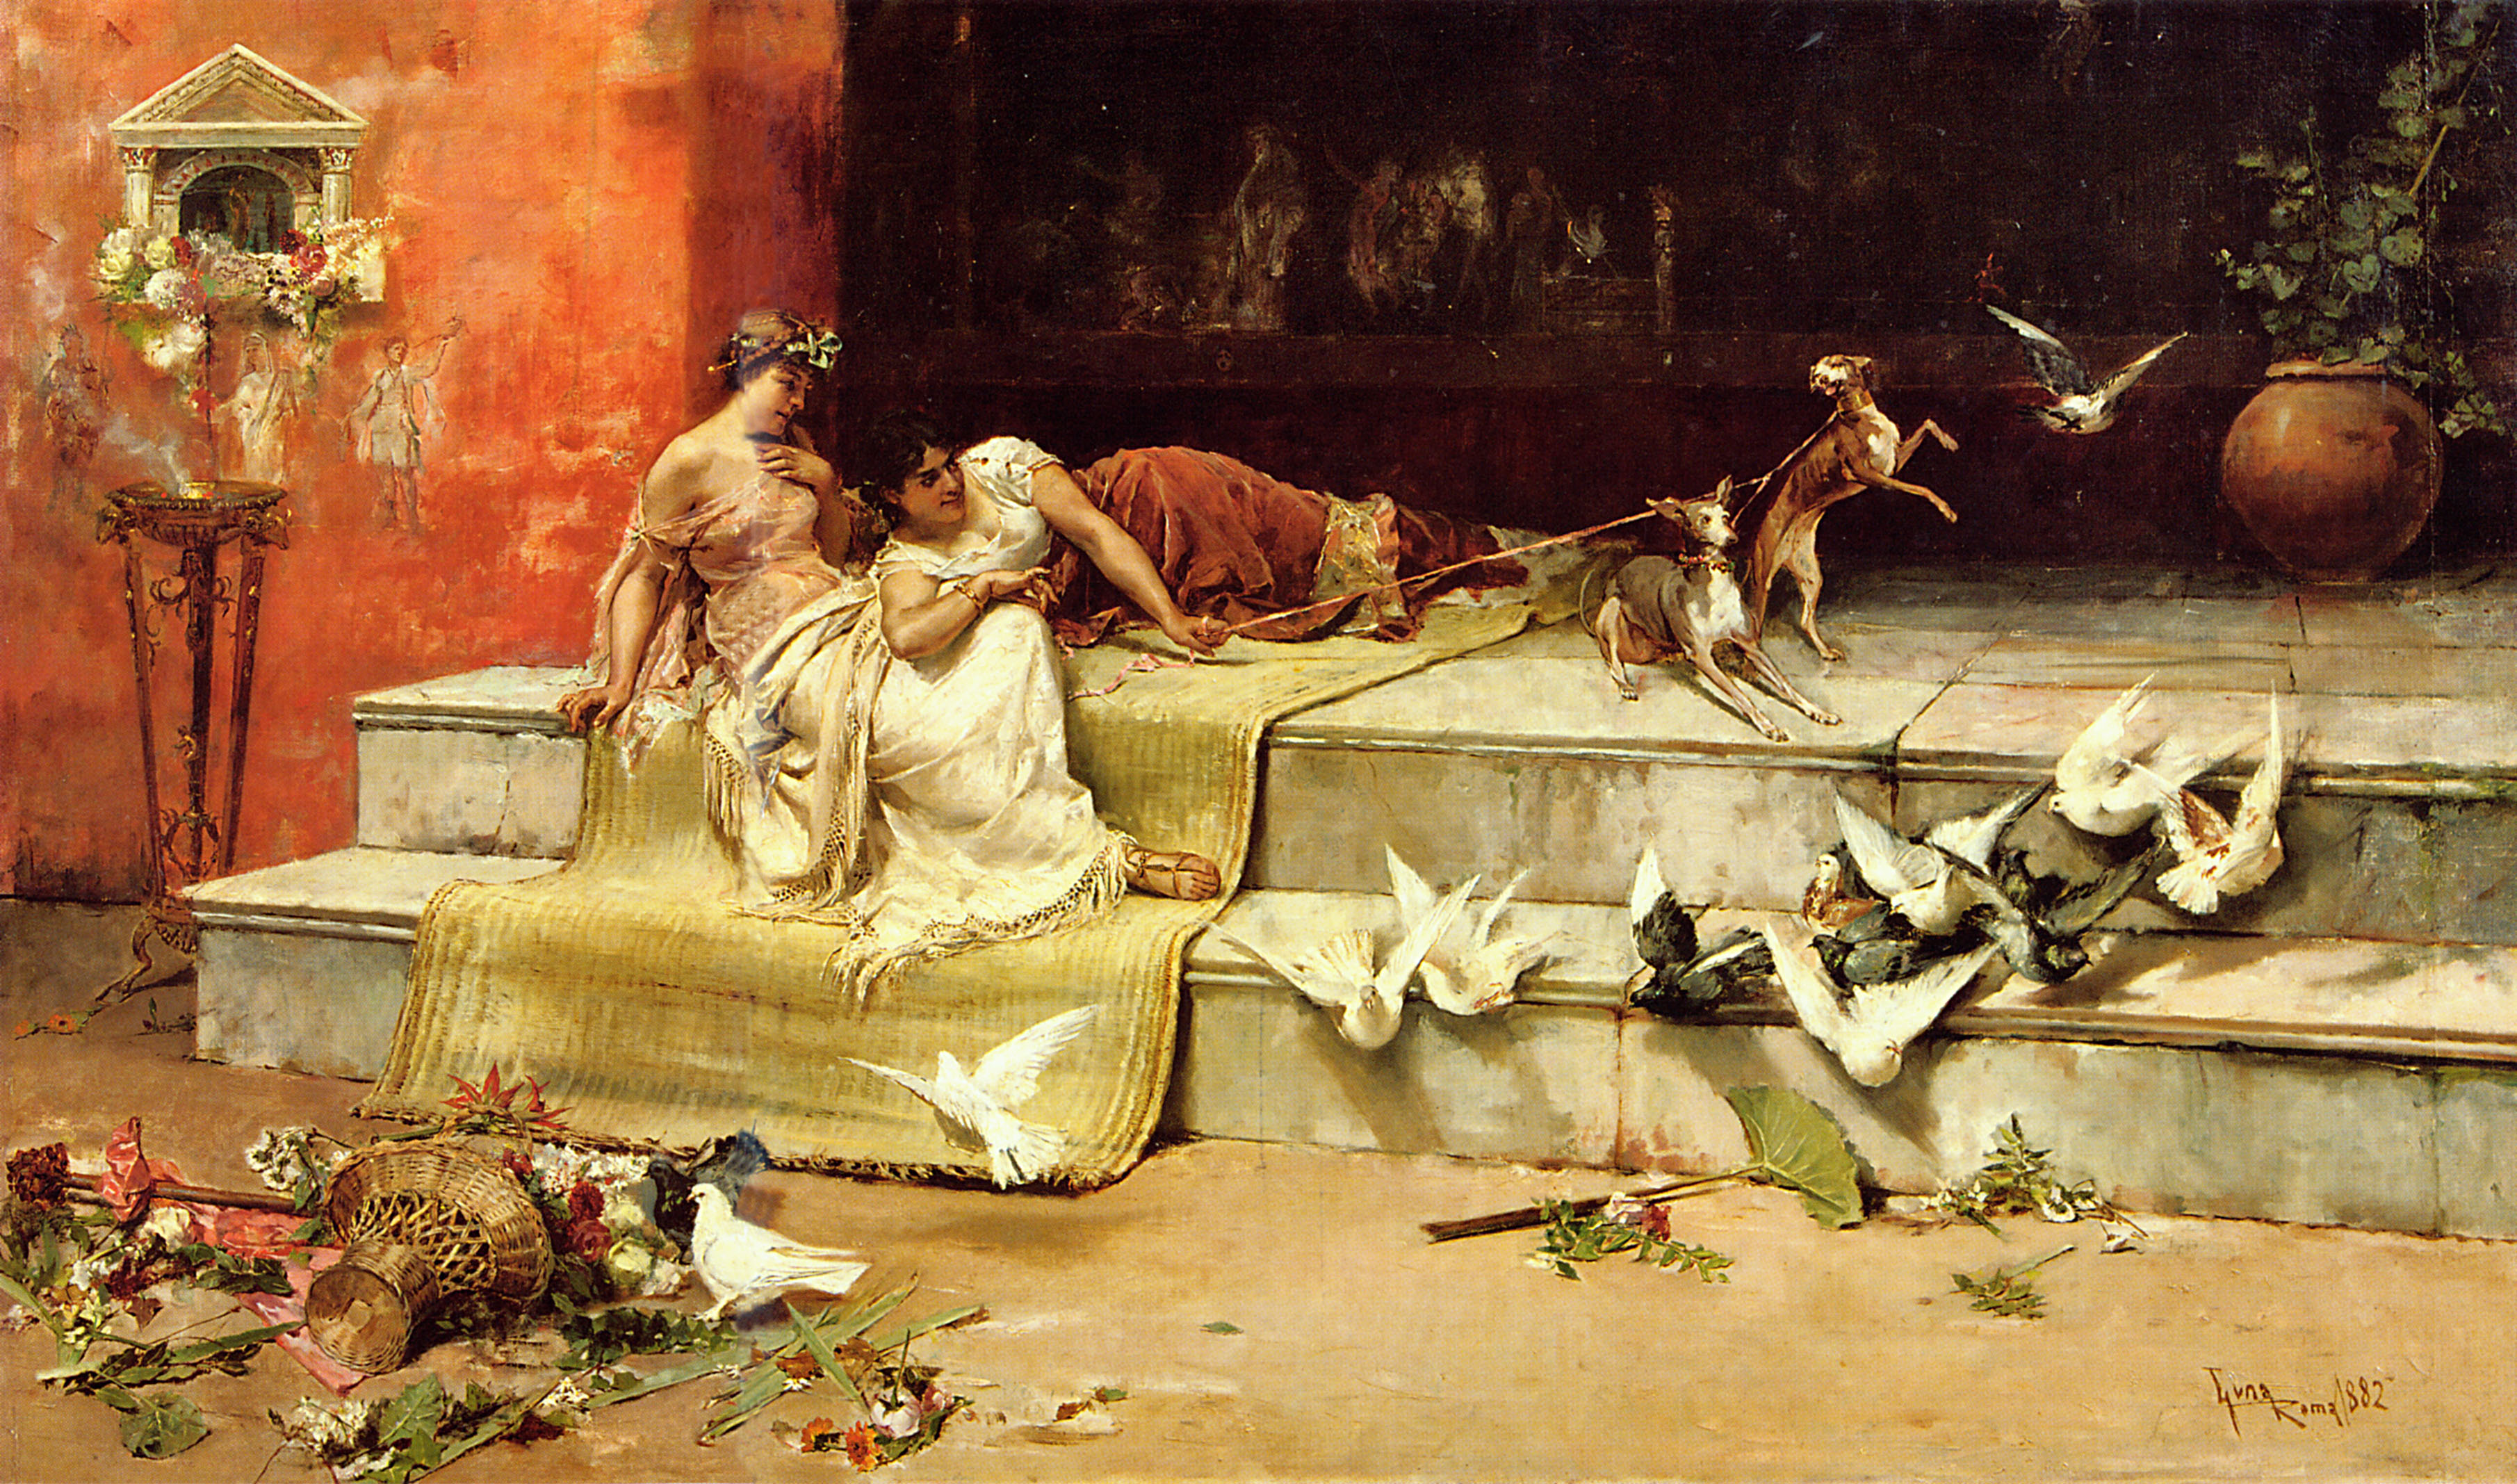 What does the painting Parisian Life by Juan Luna mean